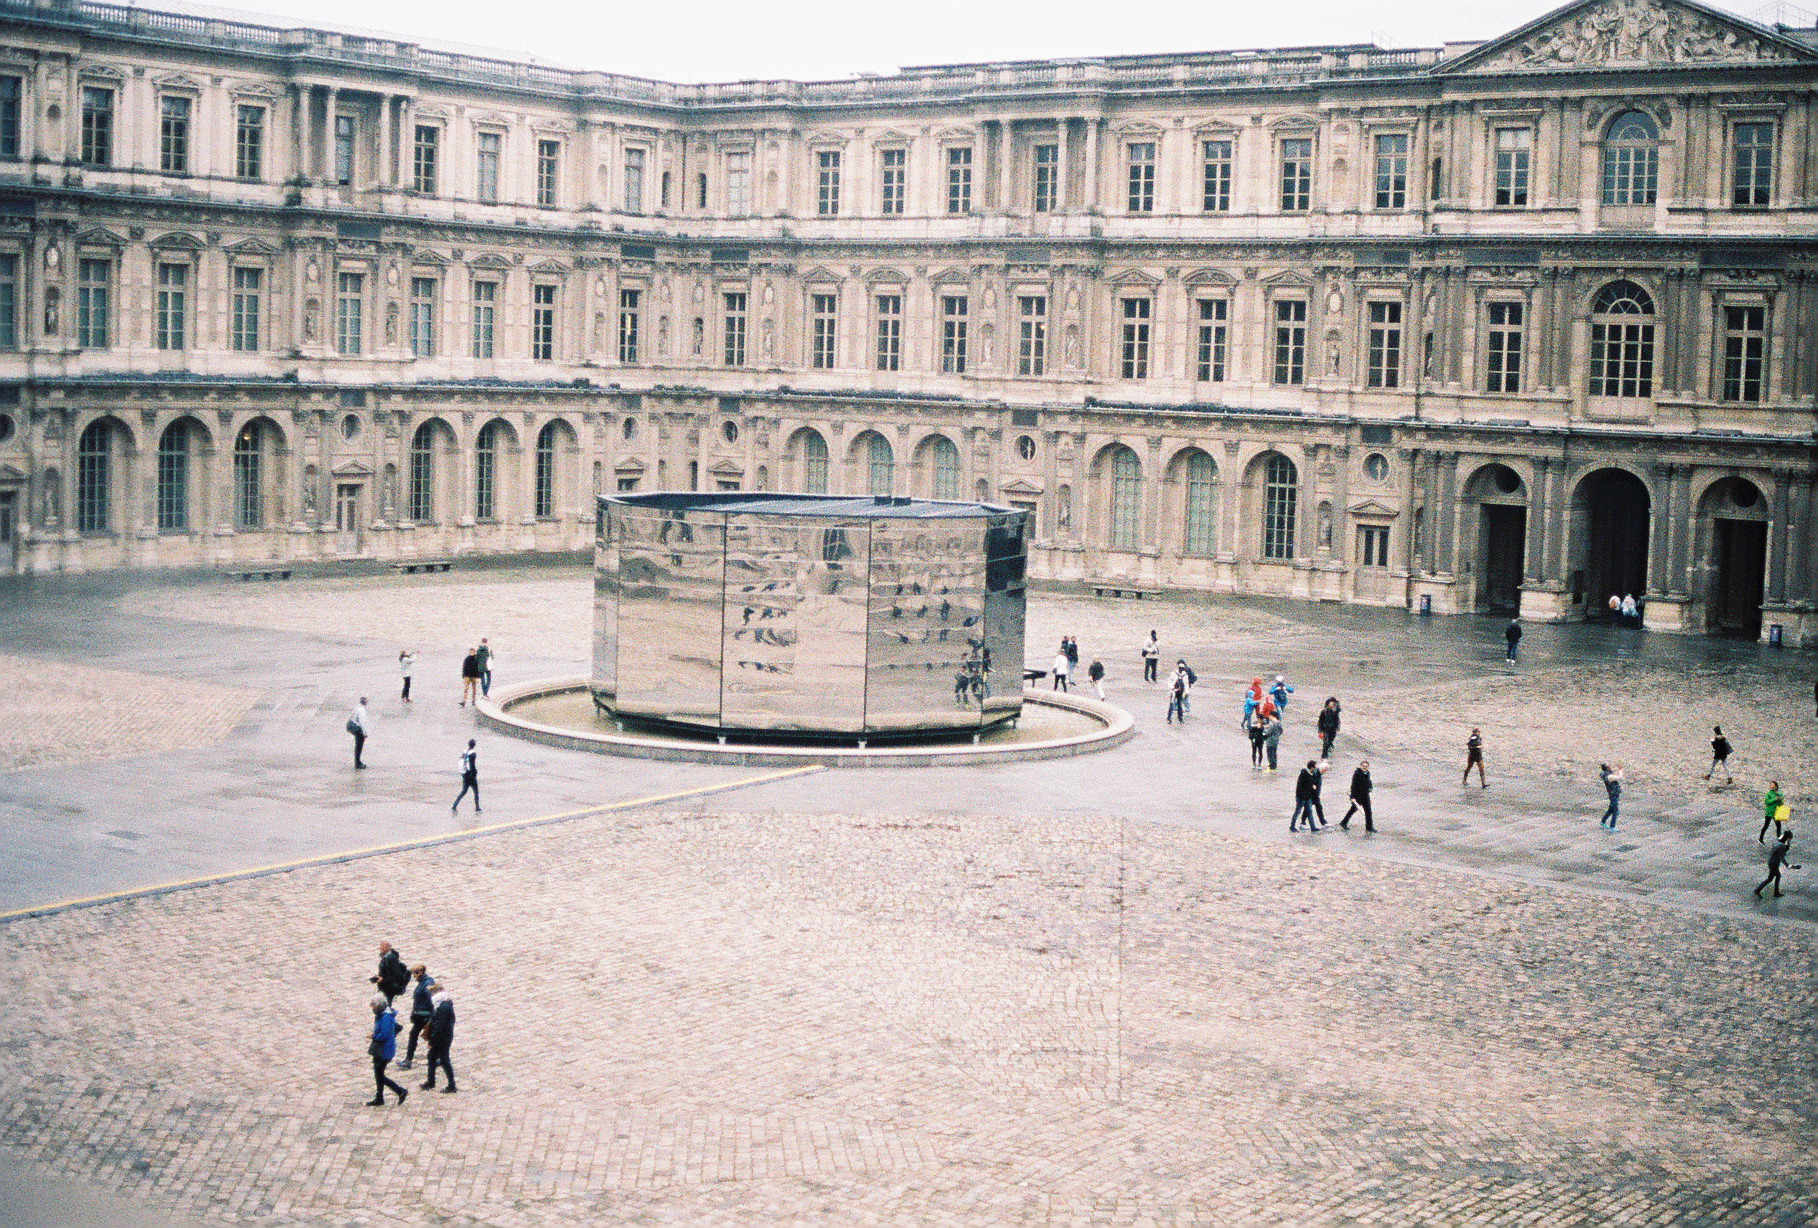 center-of-the-louvre-paris-france-european-honeymoon